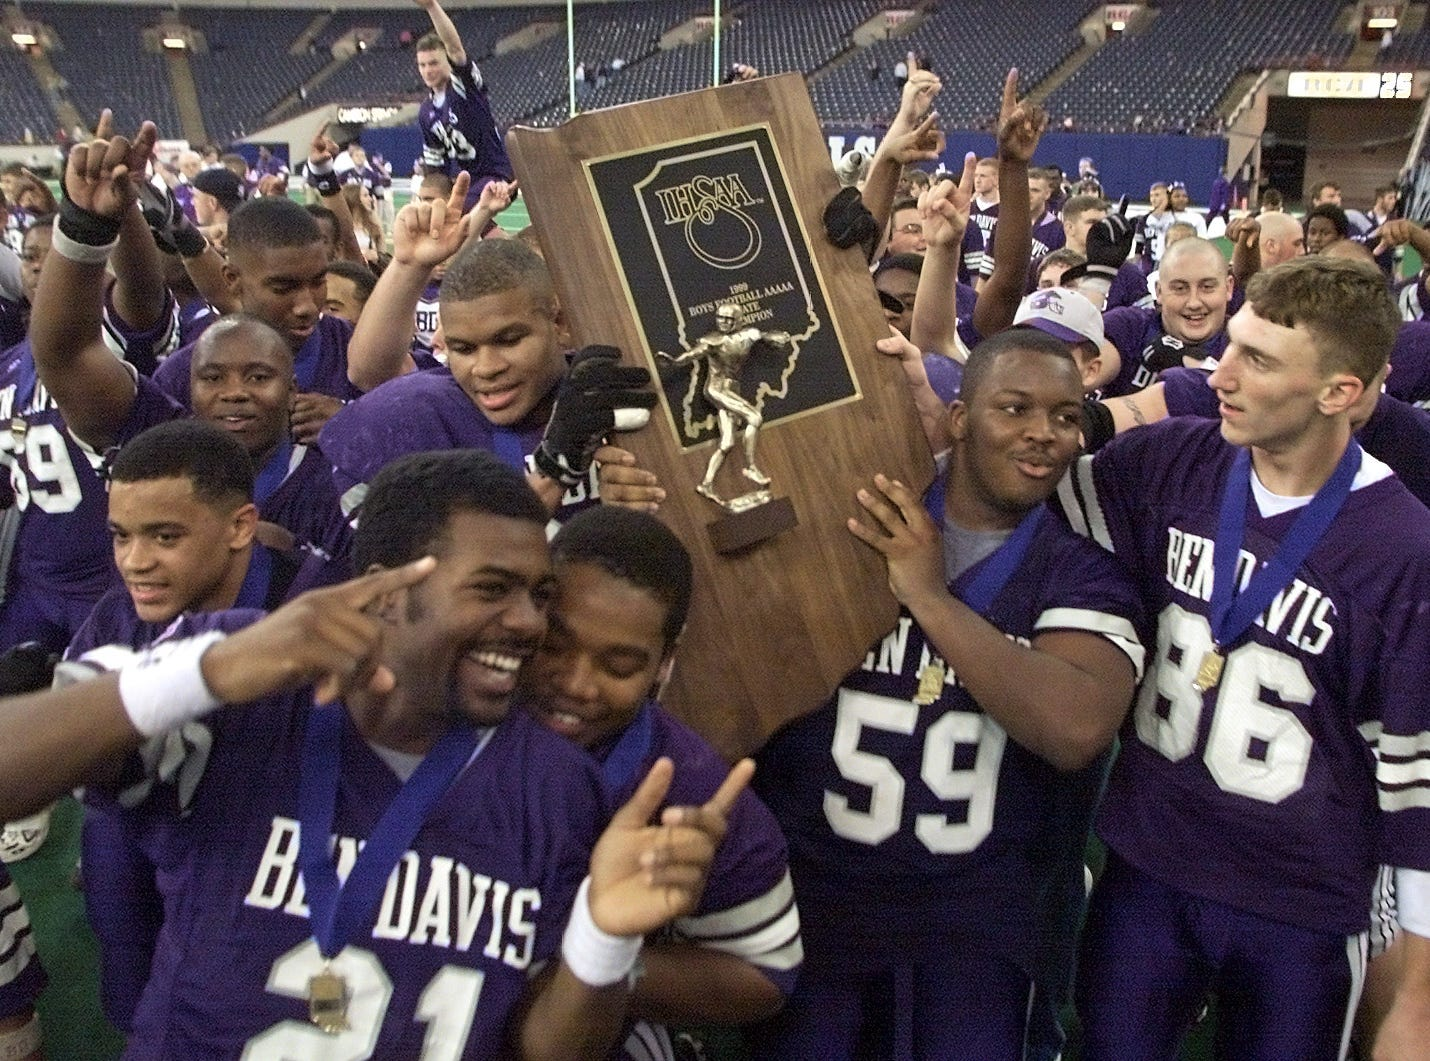 Ben Davis High football players celebrate their  IHSAA 5A Football Championship game on Nov. 27, 1999 at the RCA Dome.